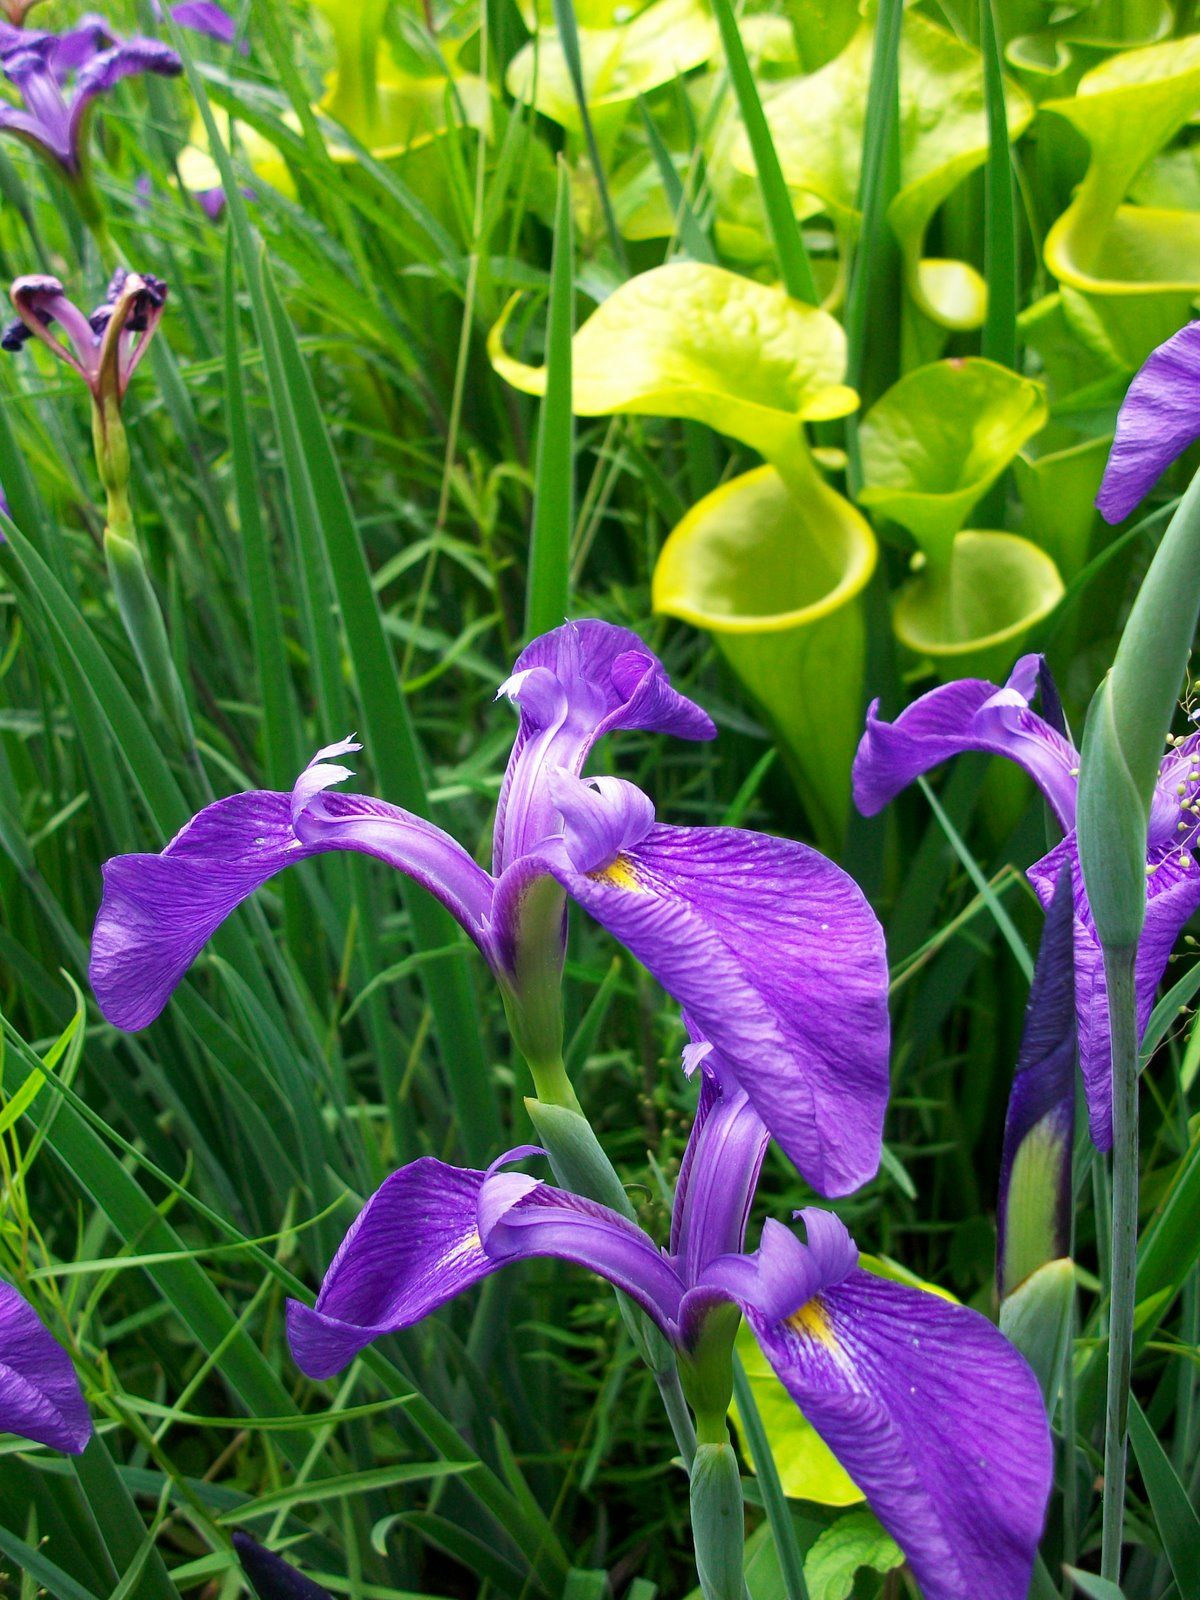 Iris tridentata is found in Southeastern United States often in Carolina Bays and Pine barrens